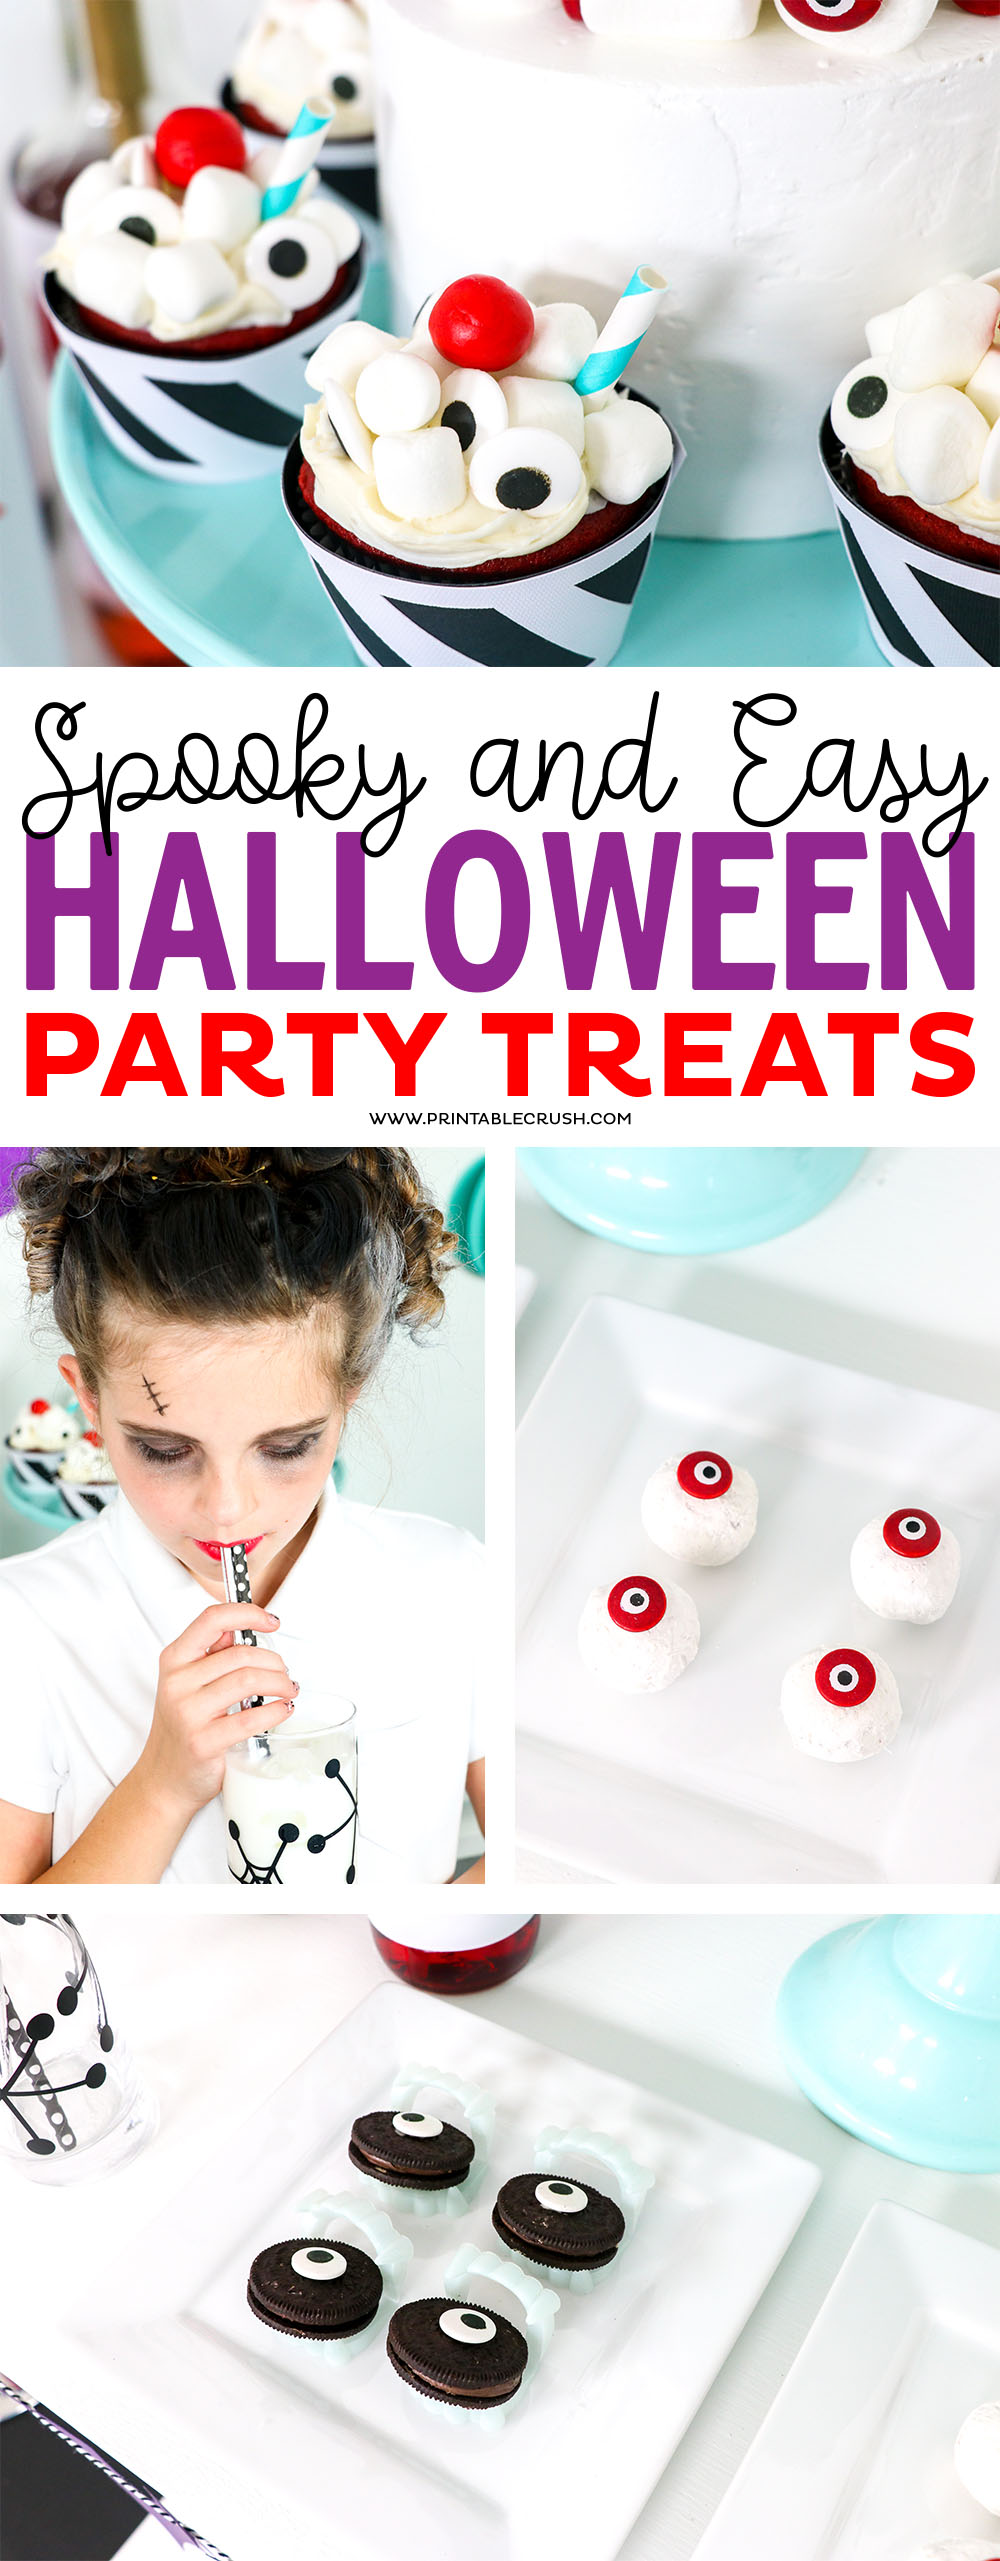 Make these Spooky and Easy Halloween Treats for your Soda Shop Halloween Party!